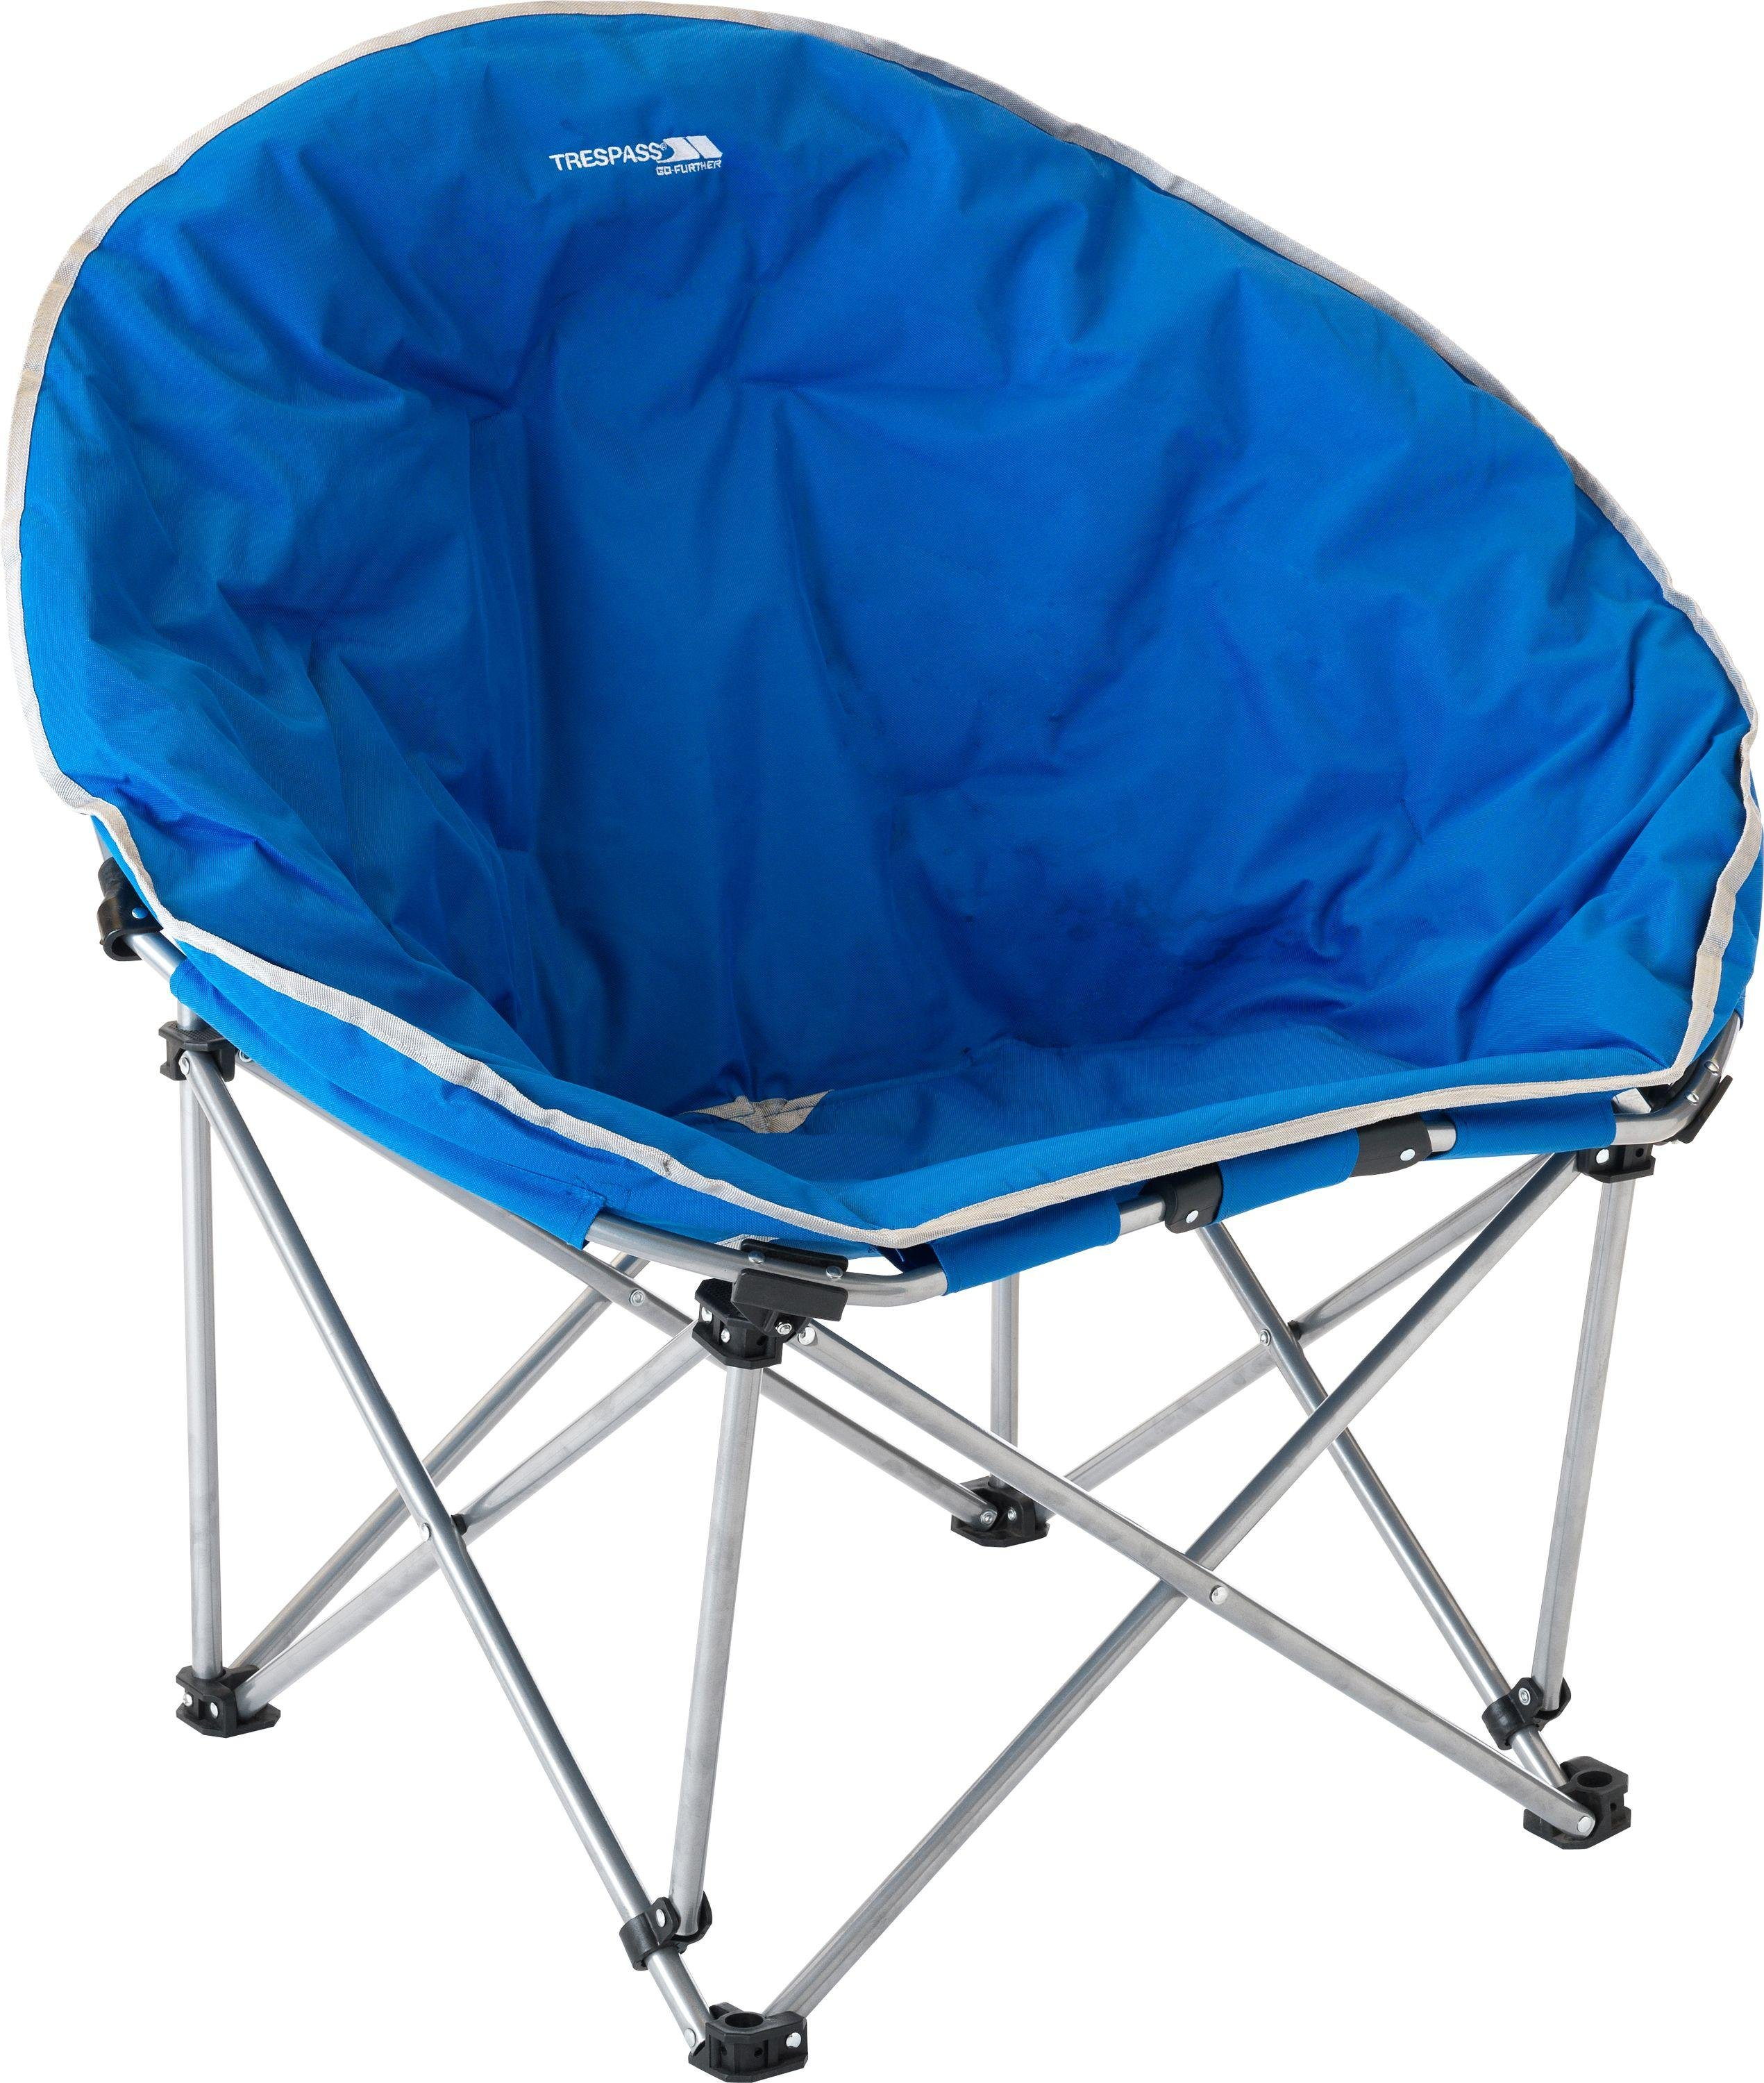 portable chairs argos rustic metal and wood dining trespass premium moon chair gay times uk 45 99